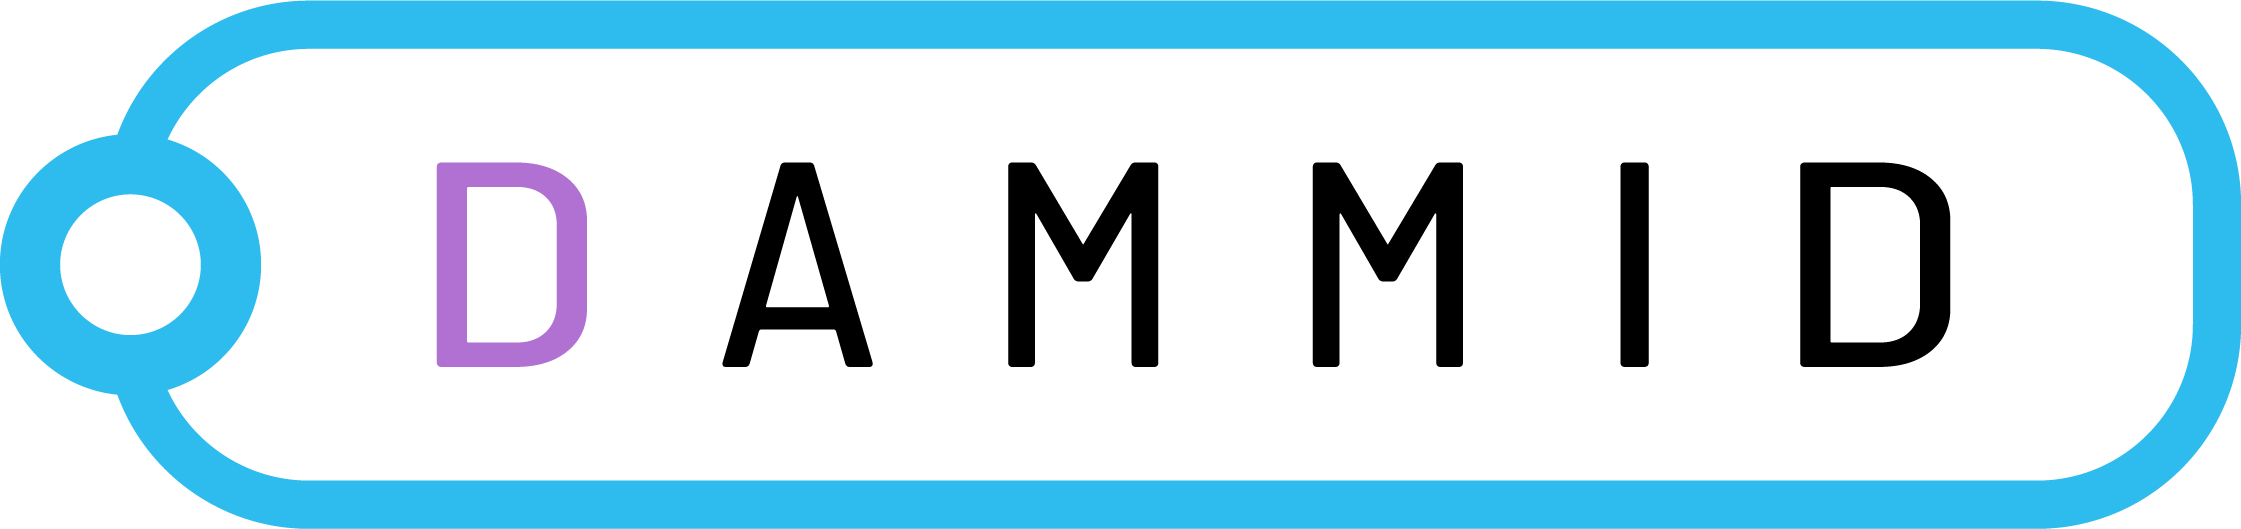 Dammid logo alternative